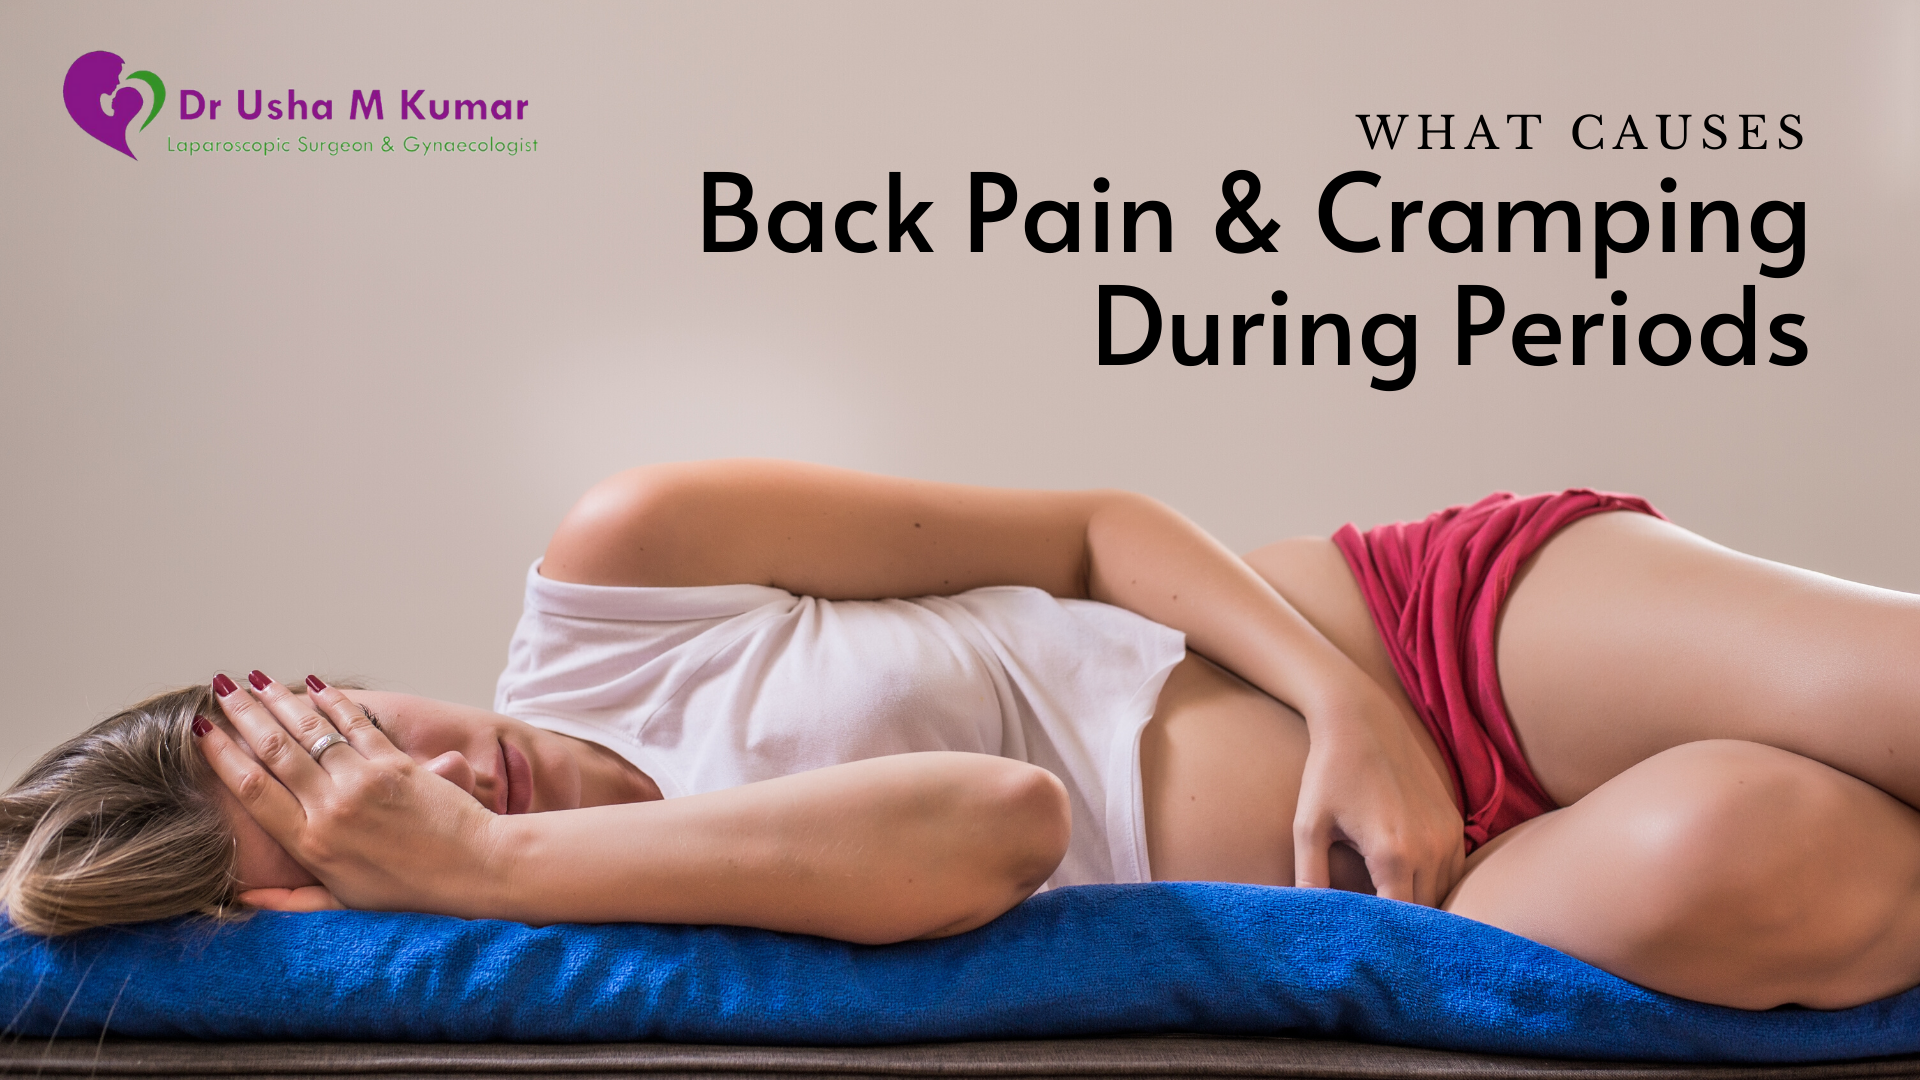 Causes of Back Pain and Cramping